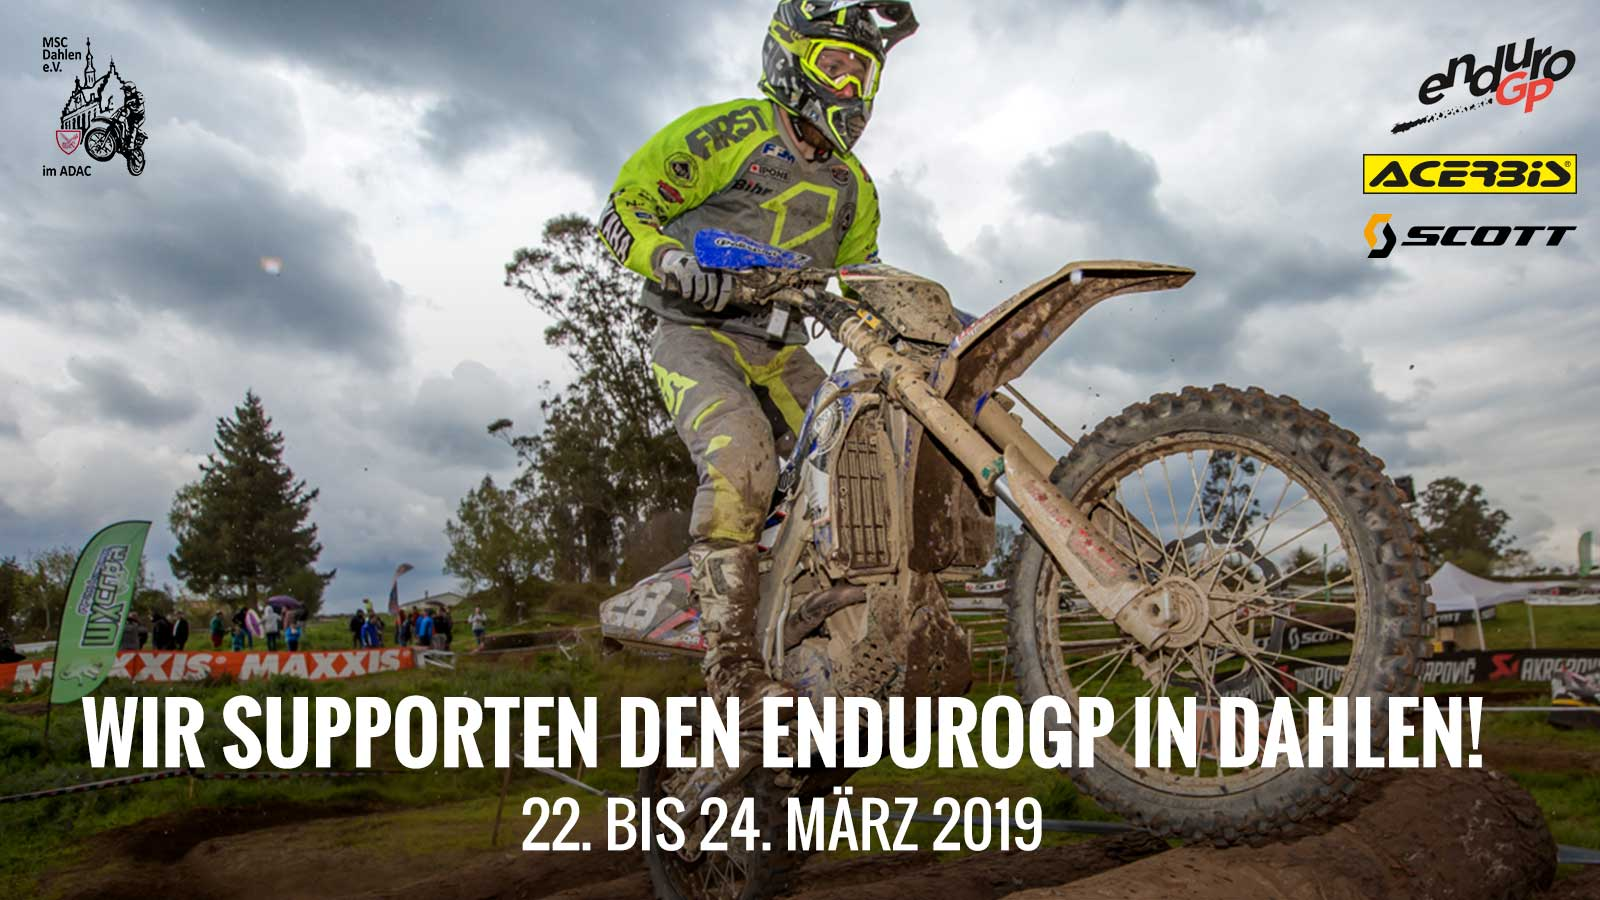 Enduro GP Dahlen